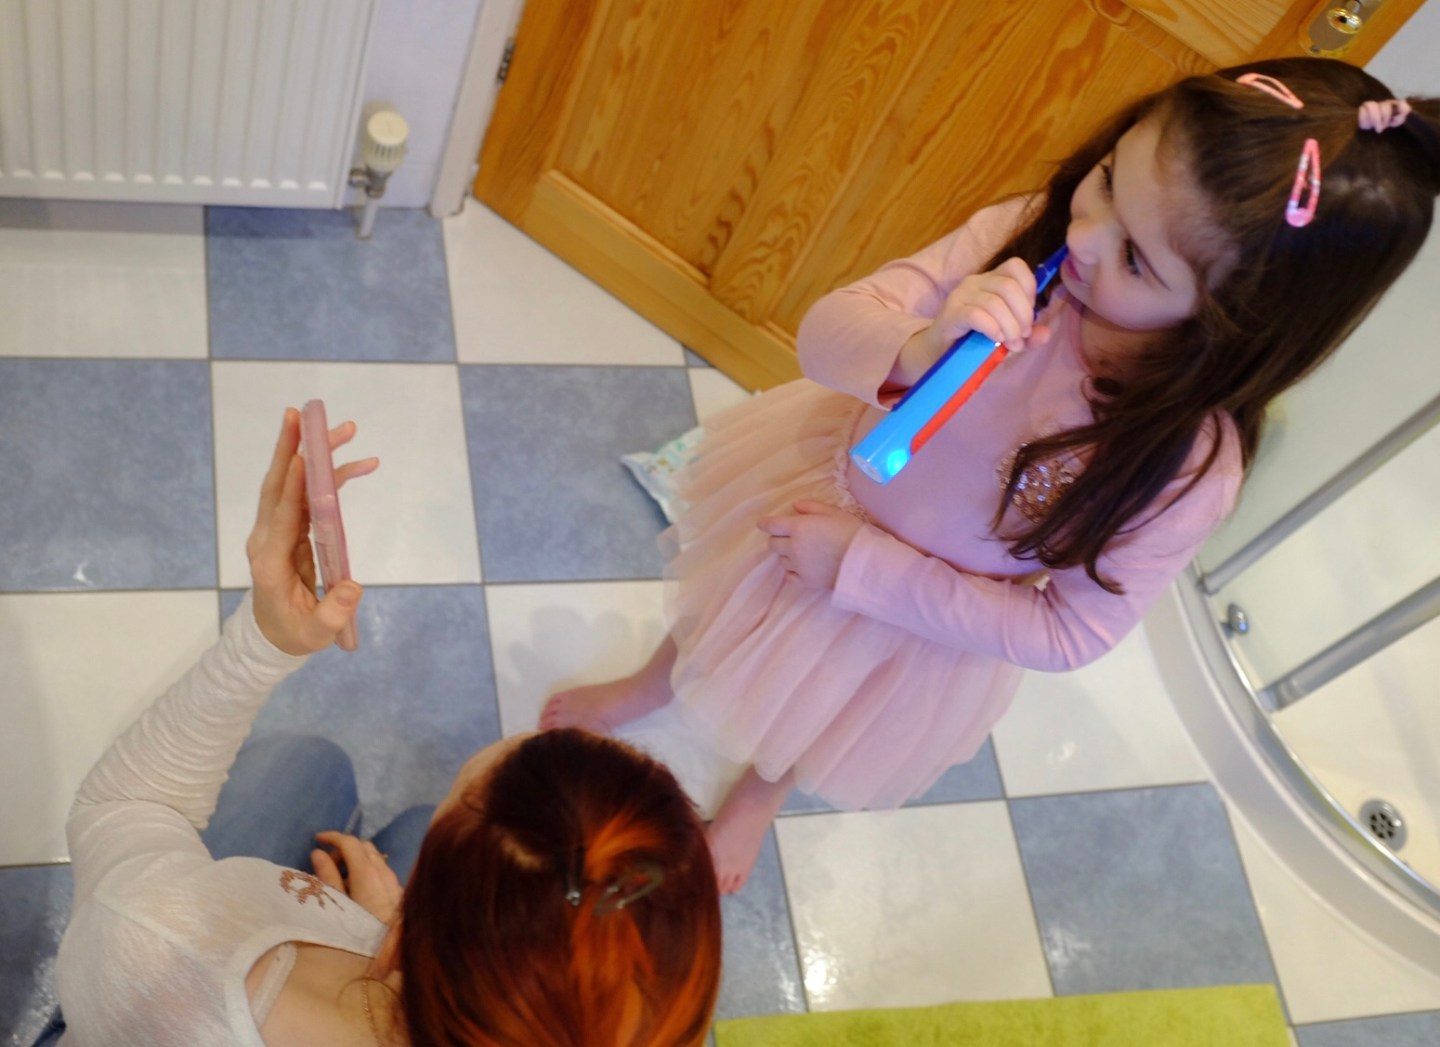 REVIEW – Playbrush Smart Sonic Toothbrush